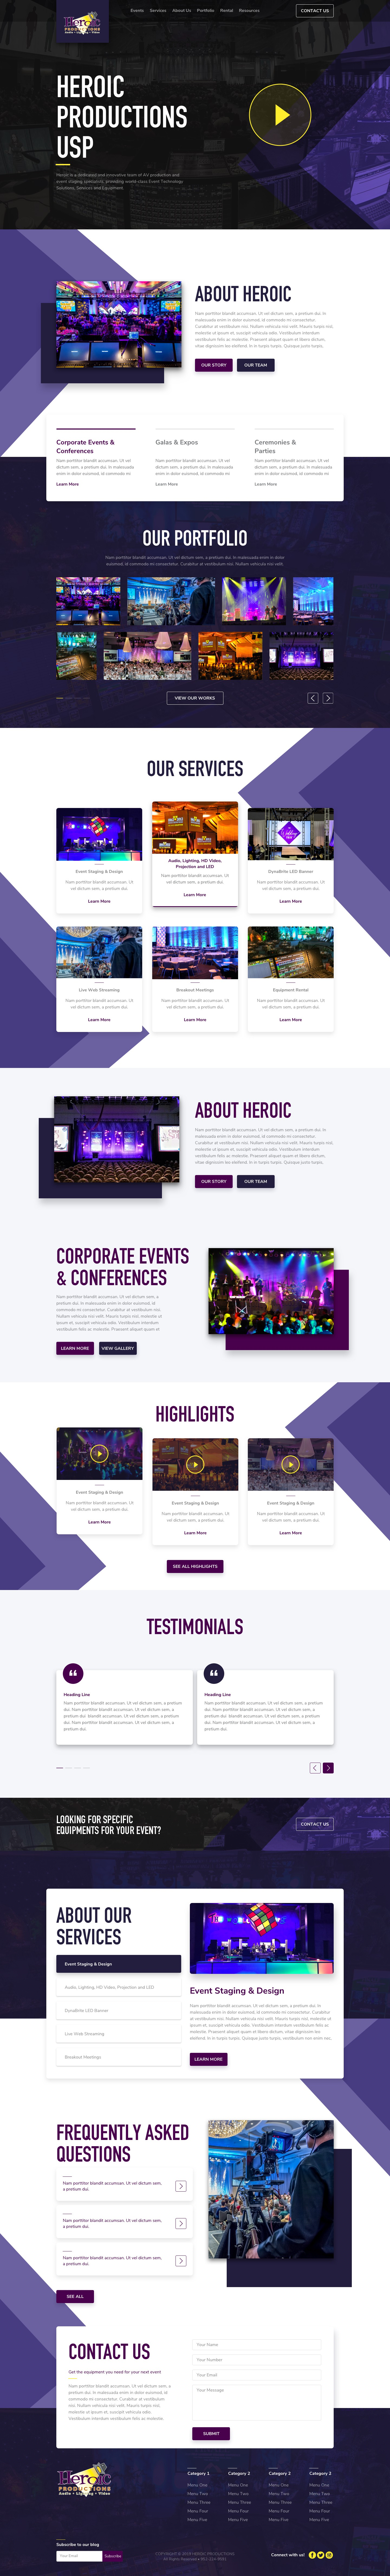 Website Page Mockup for Event Production Company *Agency Level Direction Provided